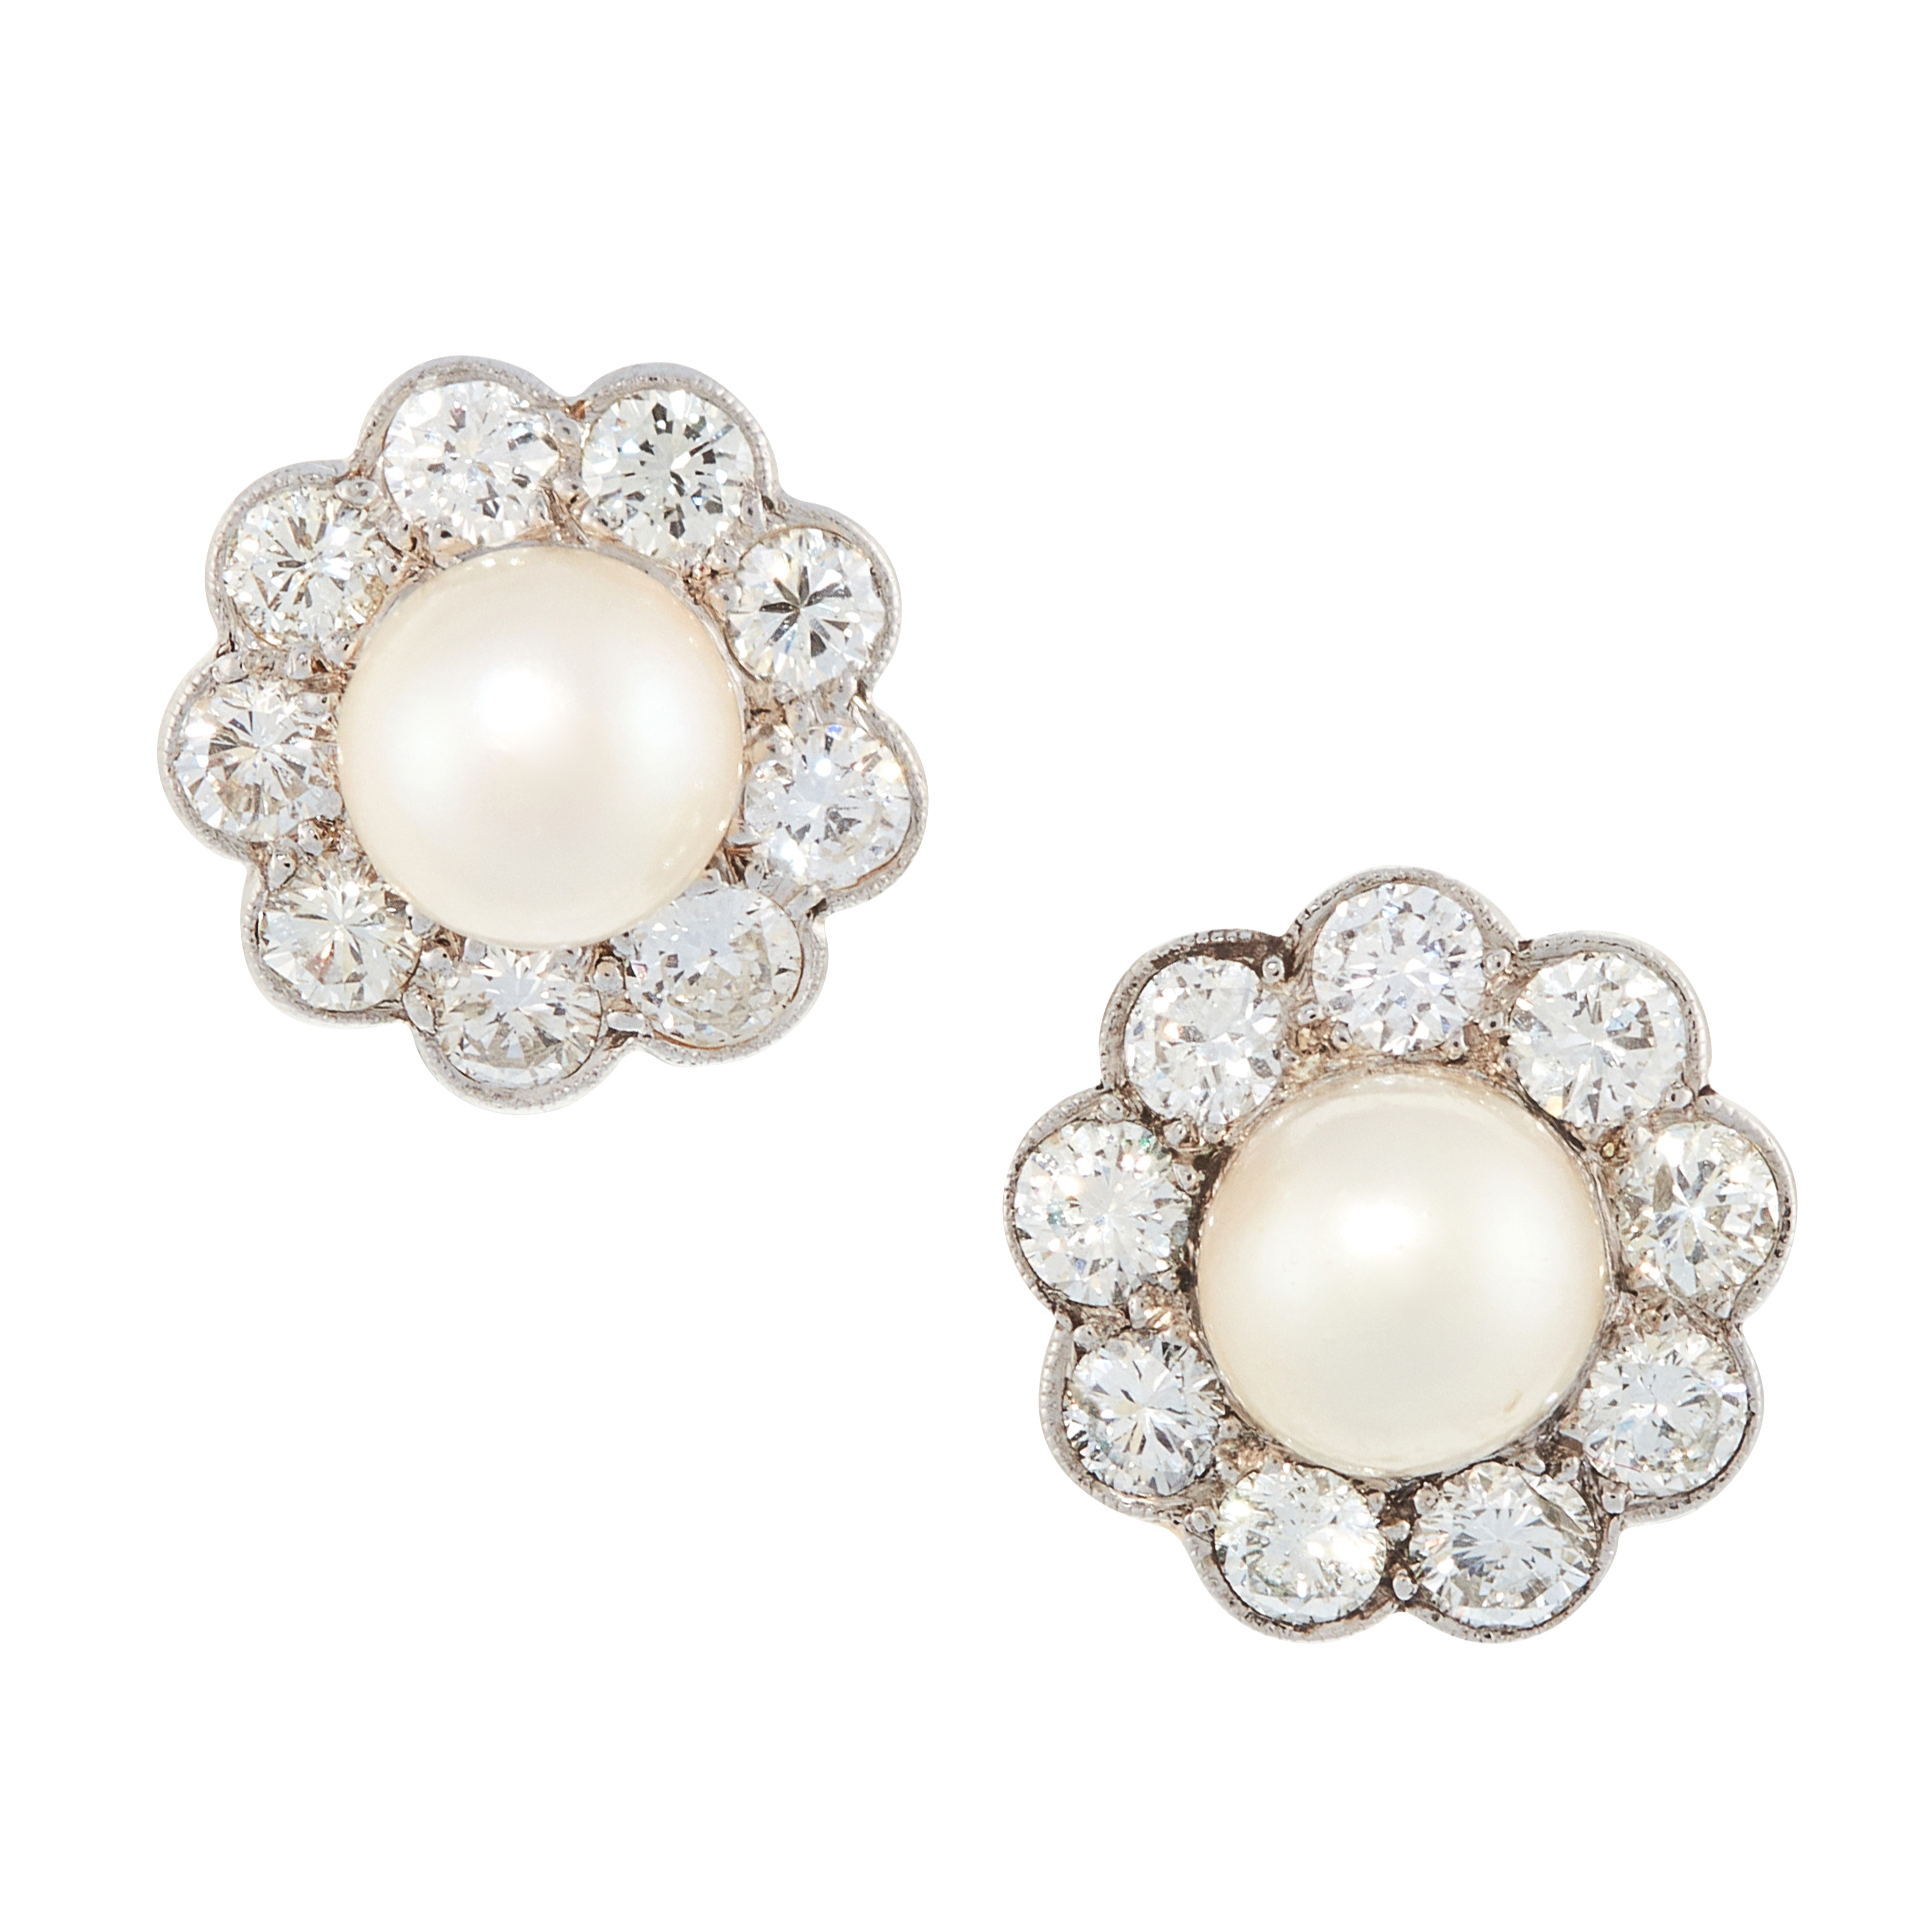 A PAIR OF PEARL AND DIAMOND STUD EARRINGS each set with a pearl of 6.8mm and 6.7mm, within borders